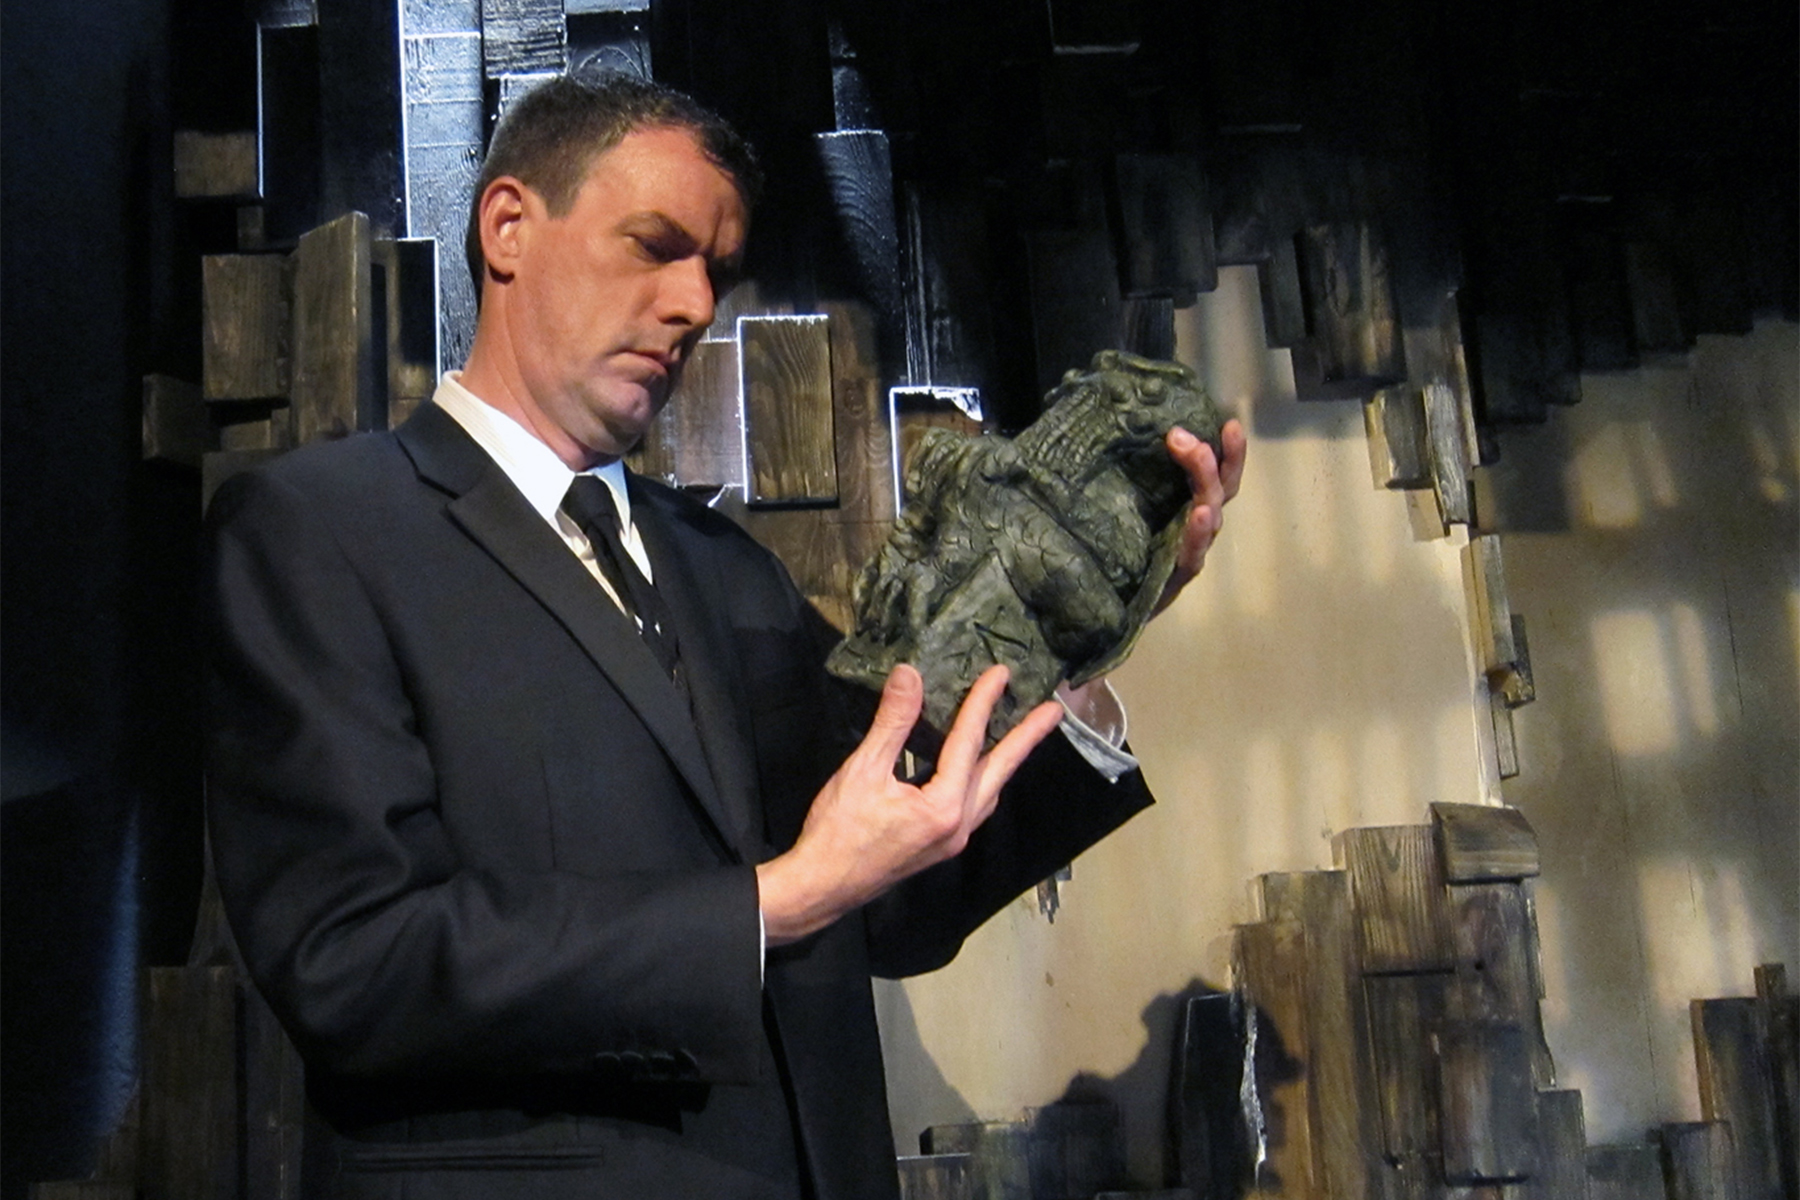 Frank Blocker portrays nine characters caught up in the mystery of a dangerous cult and an alien deity in The Visceral Company's stage adaptation of H.P. Lovecraft's THE CALL OF CTHULHU.